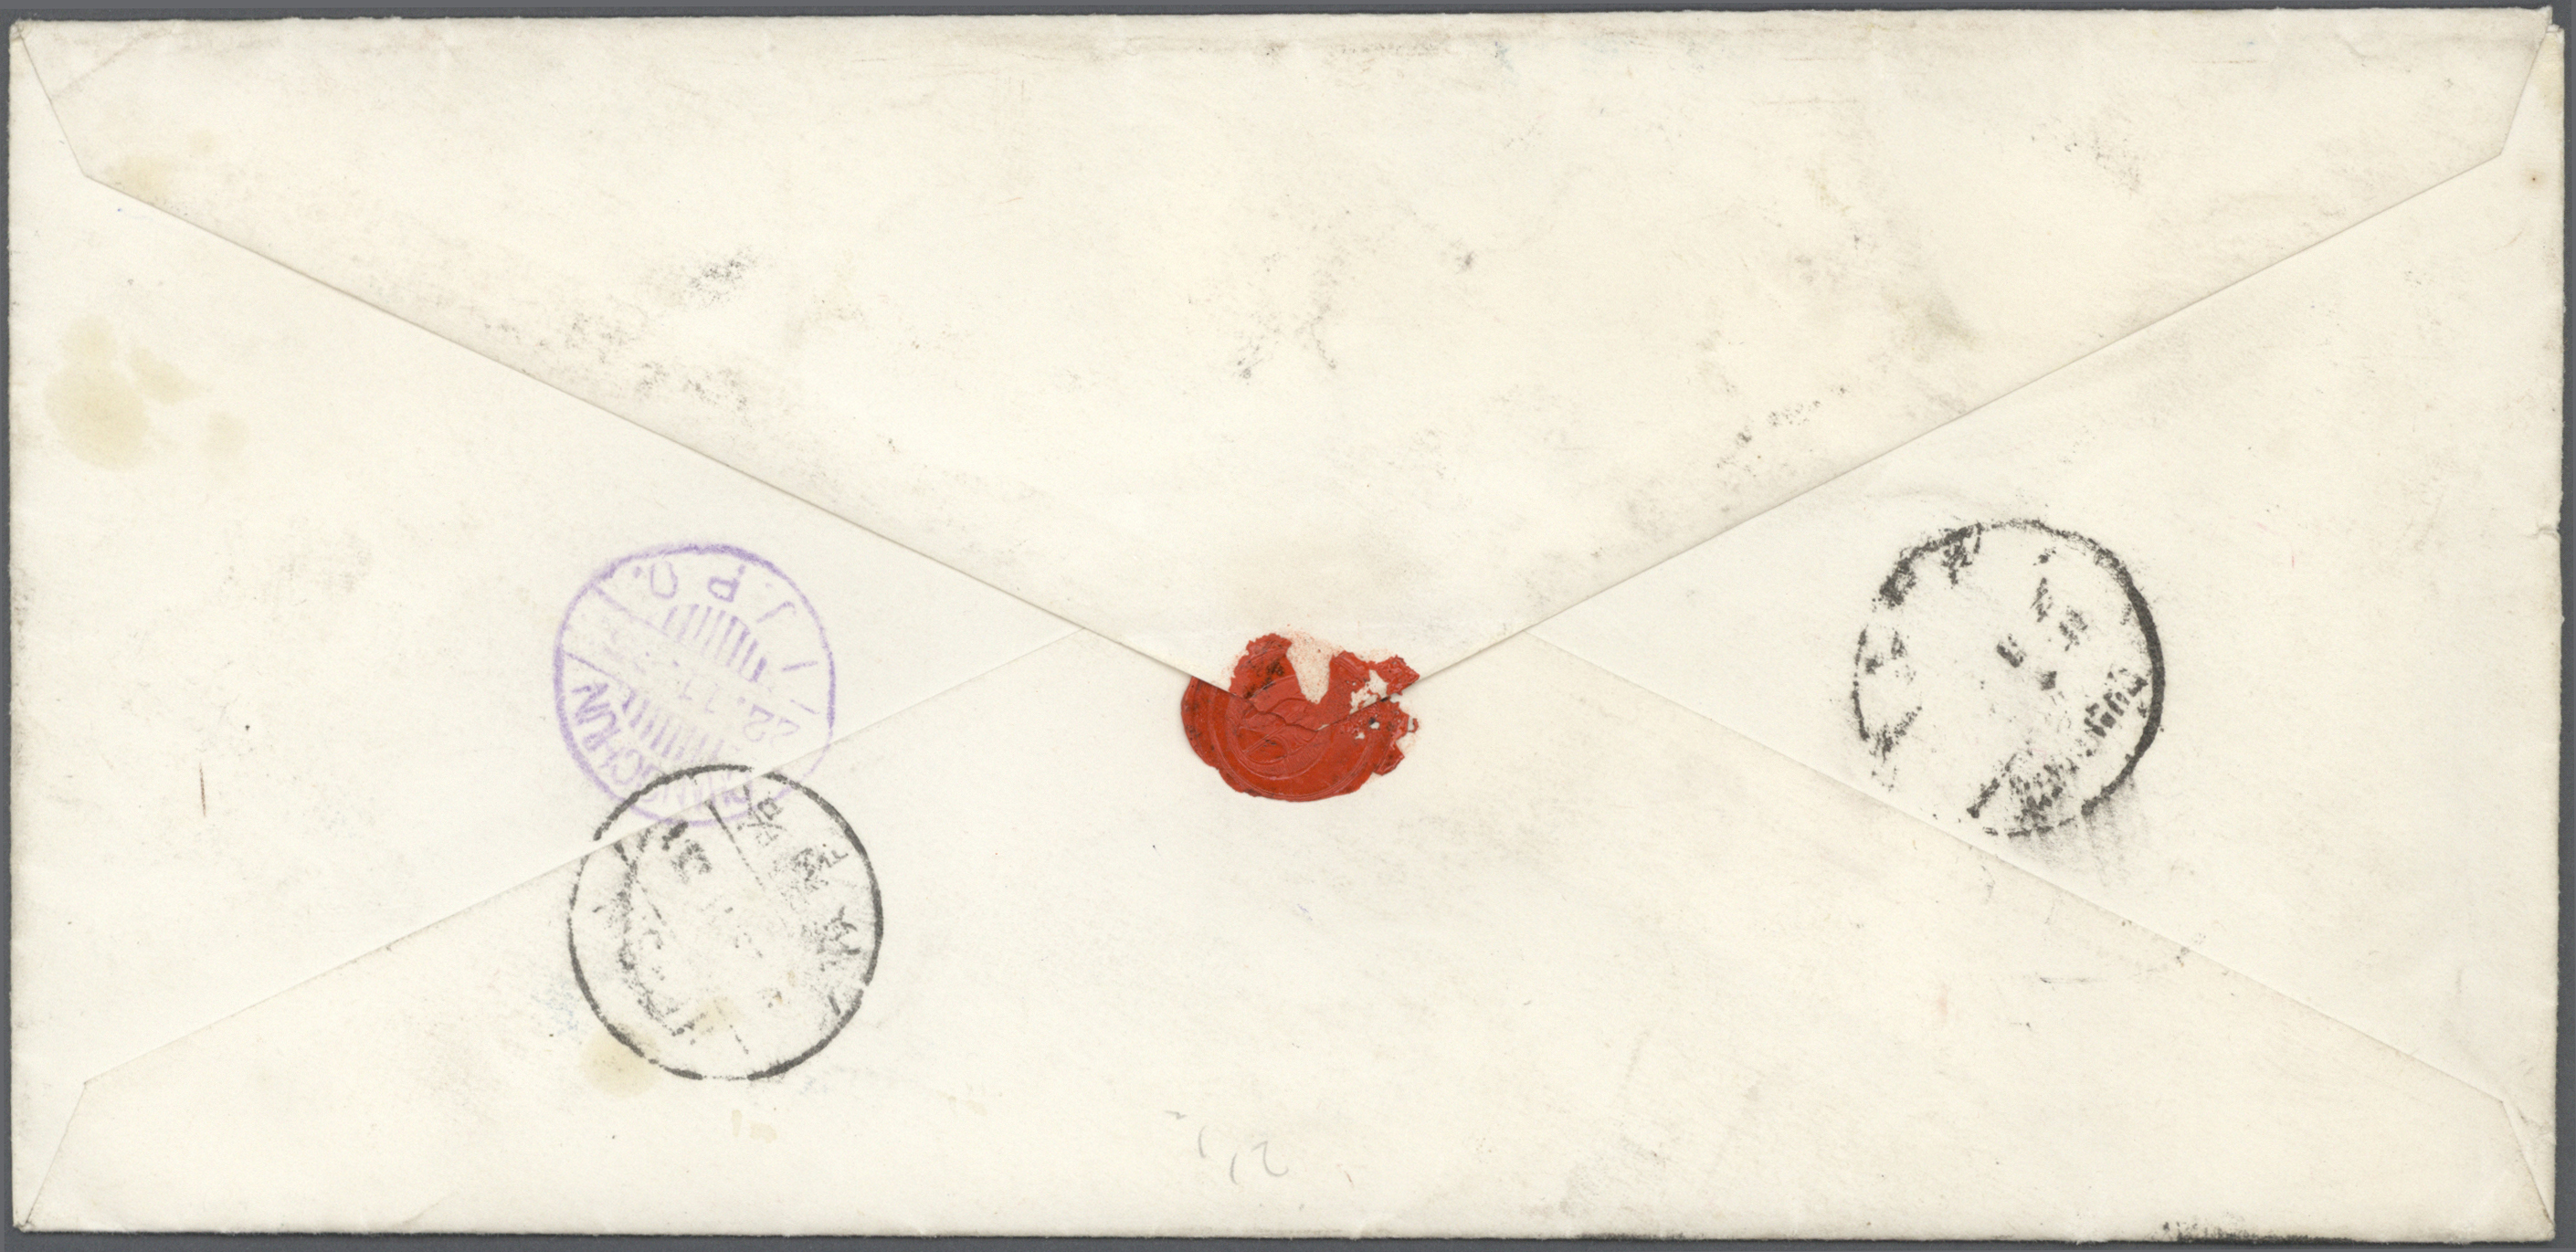 Lot 6588 - japanische post in korea  -  Auktionshaus Christoph Gärtner GmbH & Co. KG Philately: ASIA single lots including Special Catalog Malaya Auction #39 Day 3